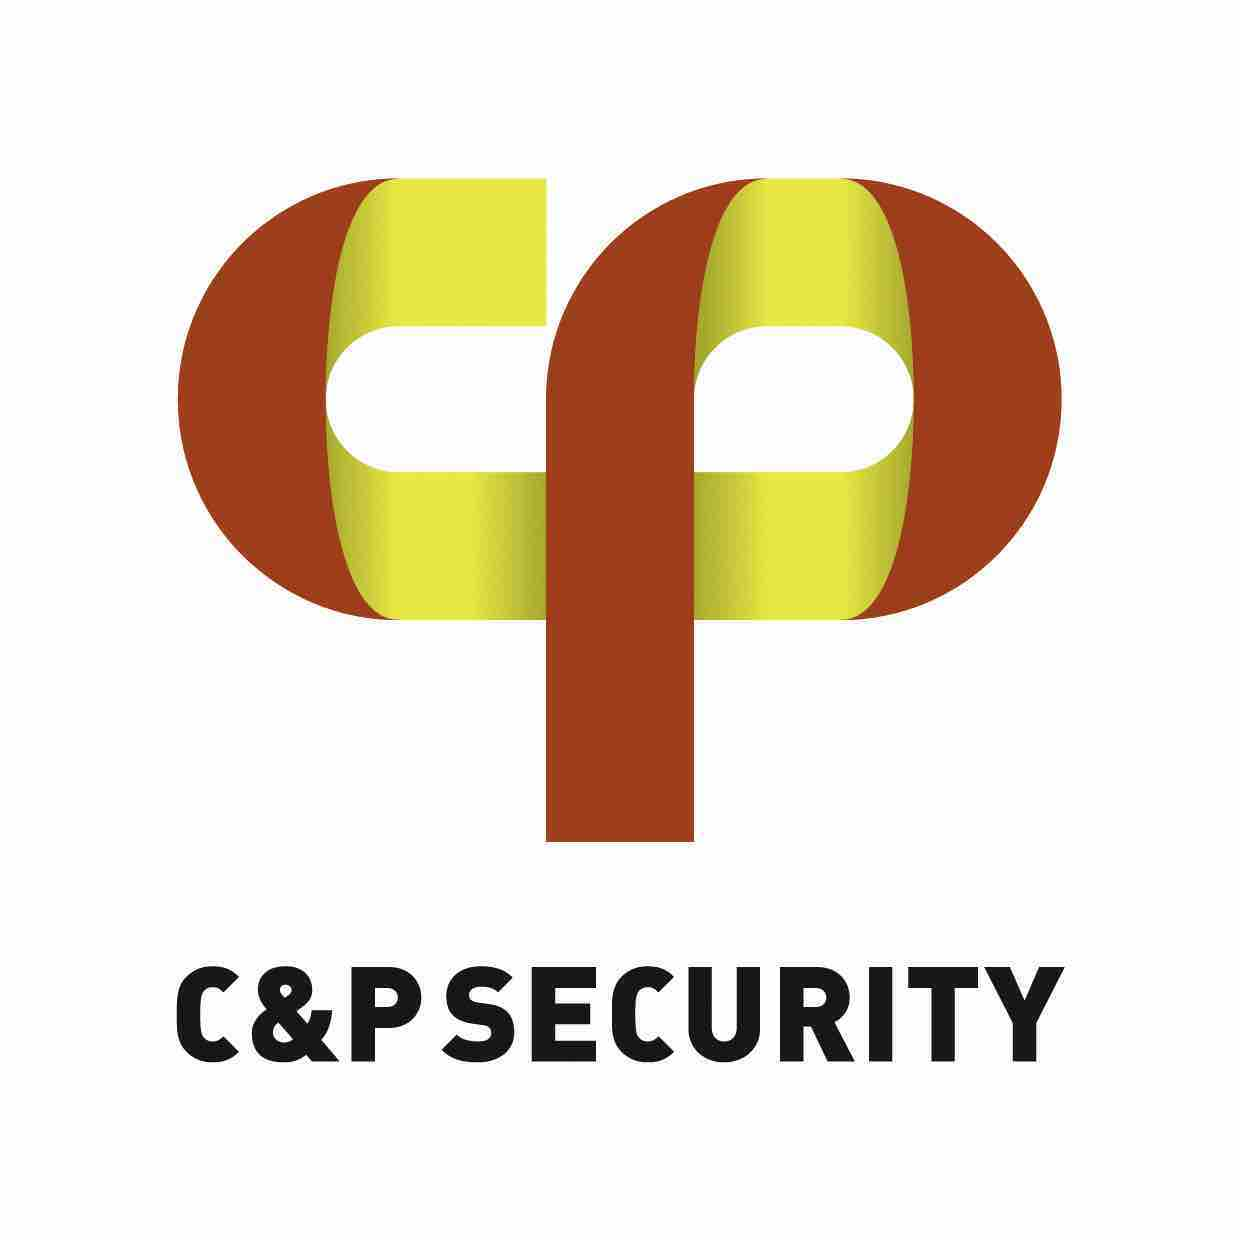 C & P SECURITY